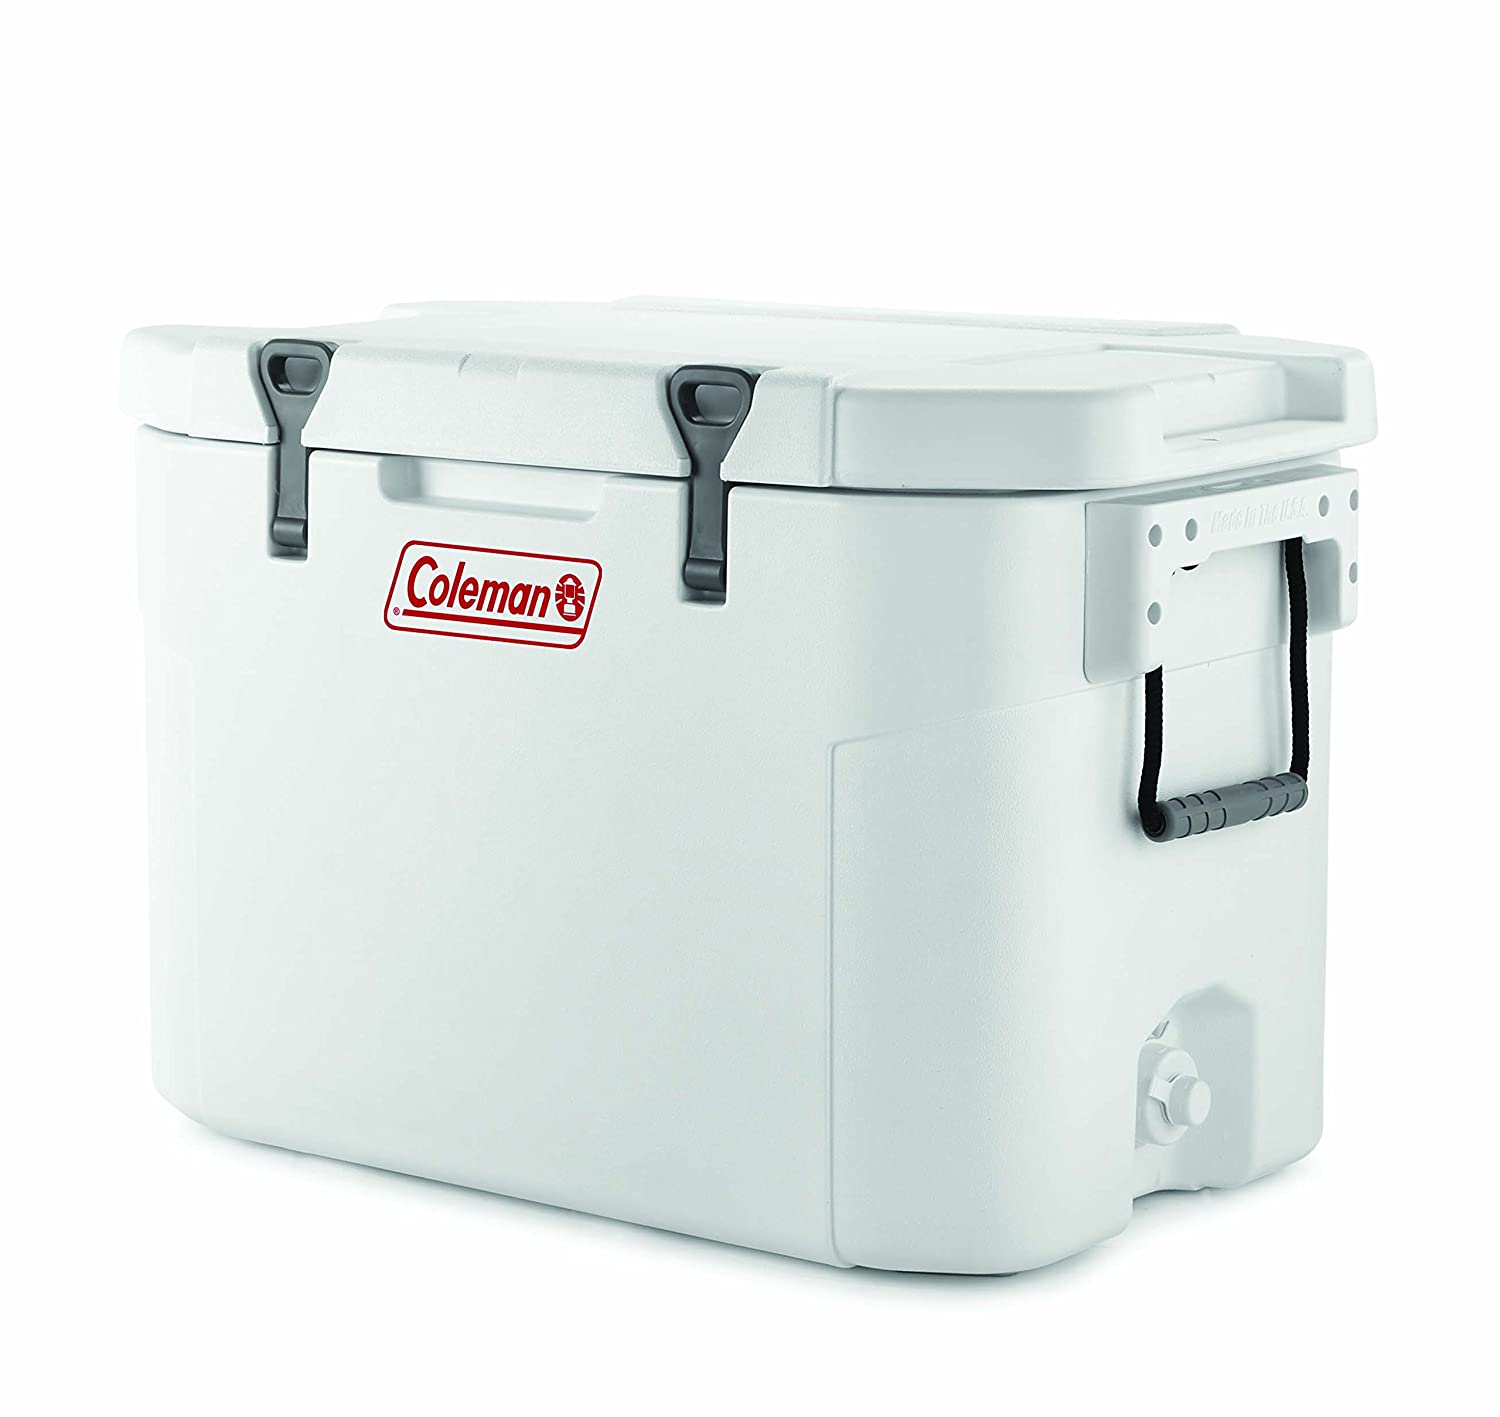 Best Coleman Quart Heavy-Duty Super Cooler